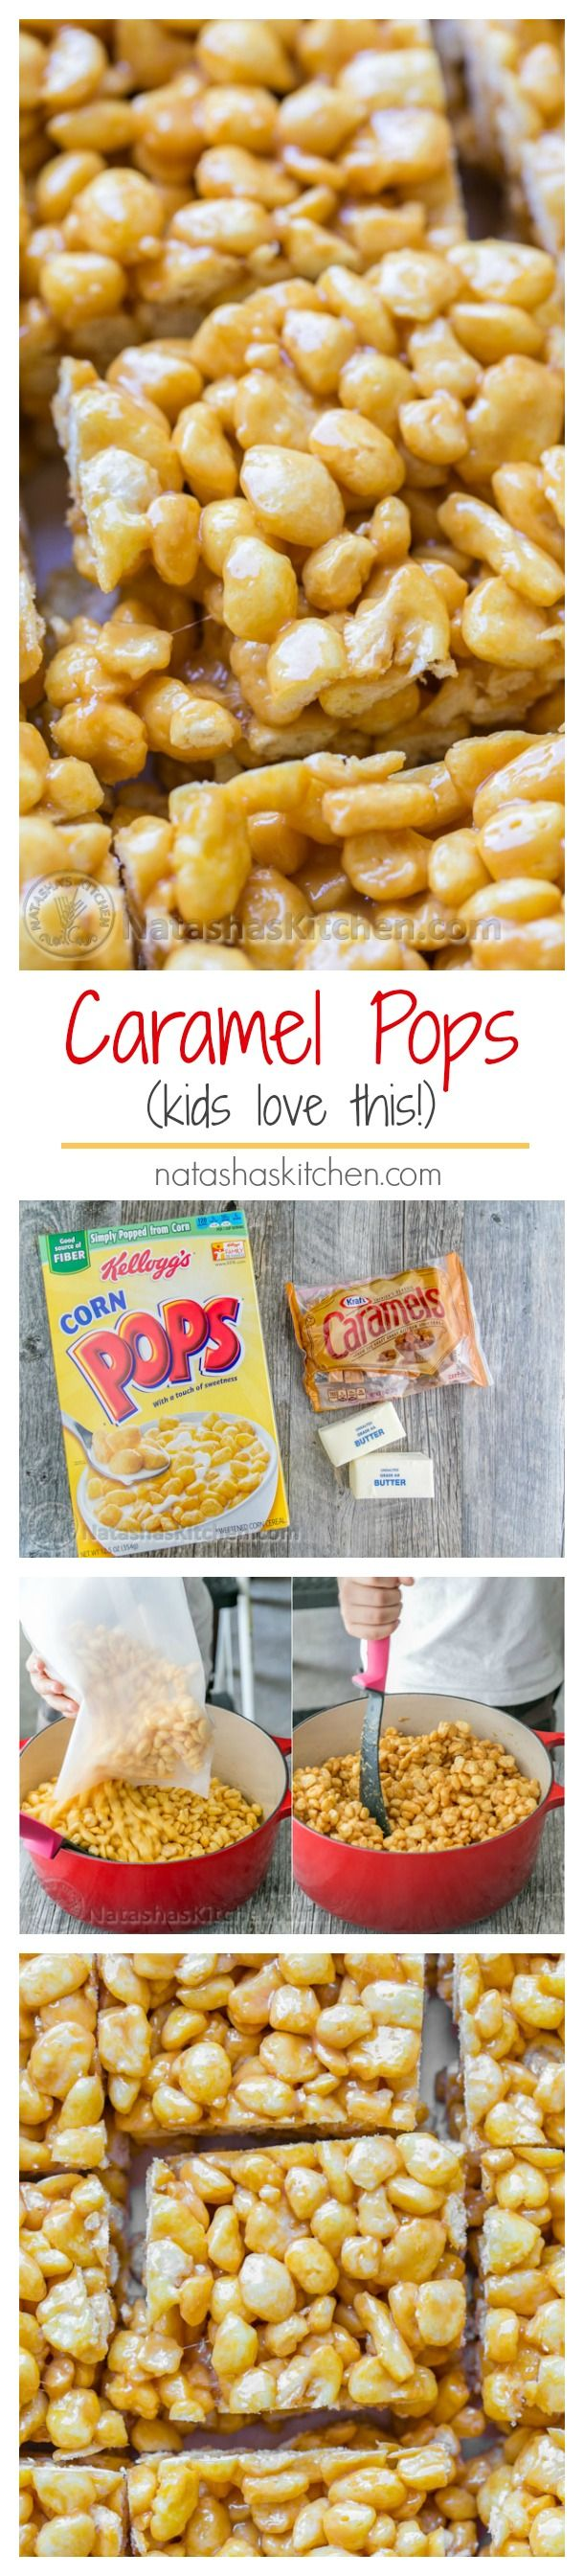 Caramel Corn Pops Treats - Kids love this dessert!! All you need is 3 main ingredients and 10 minutes. | NatashasKitchen.com